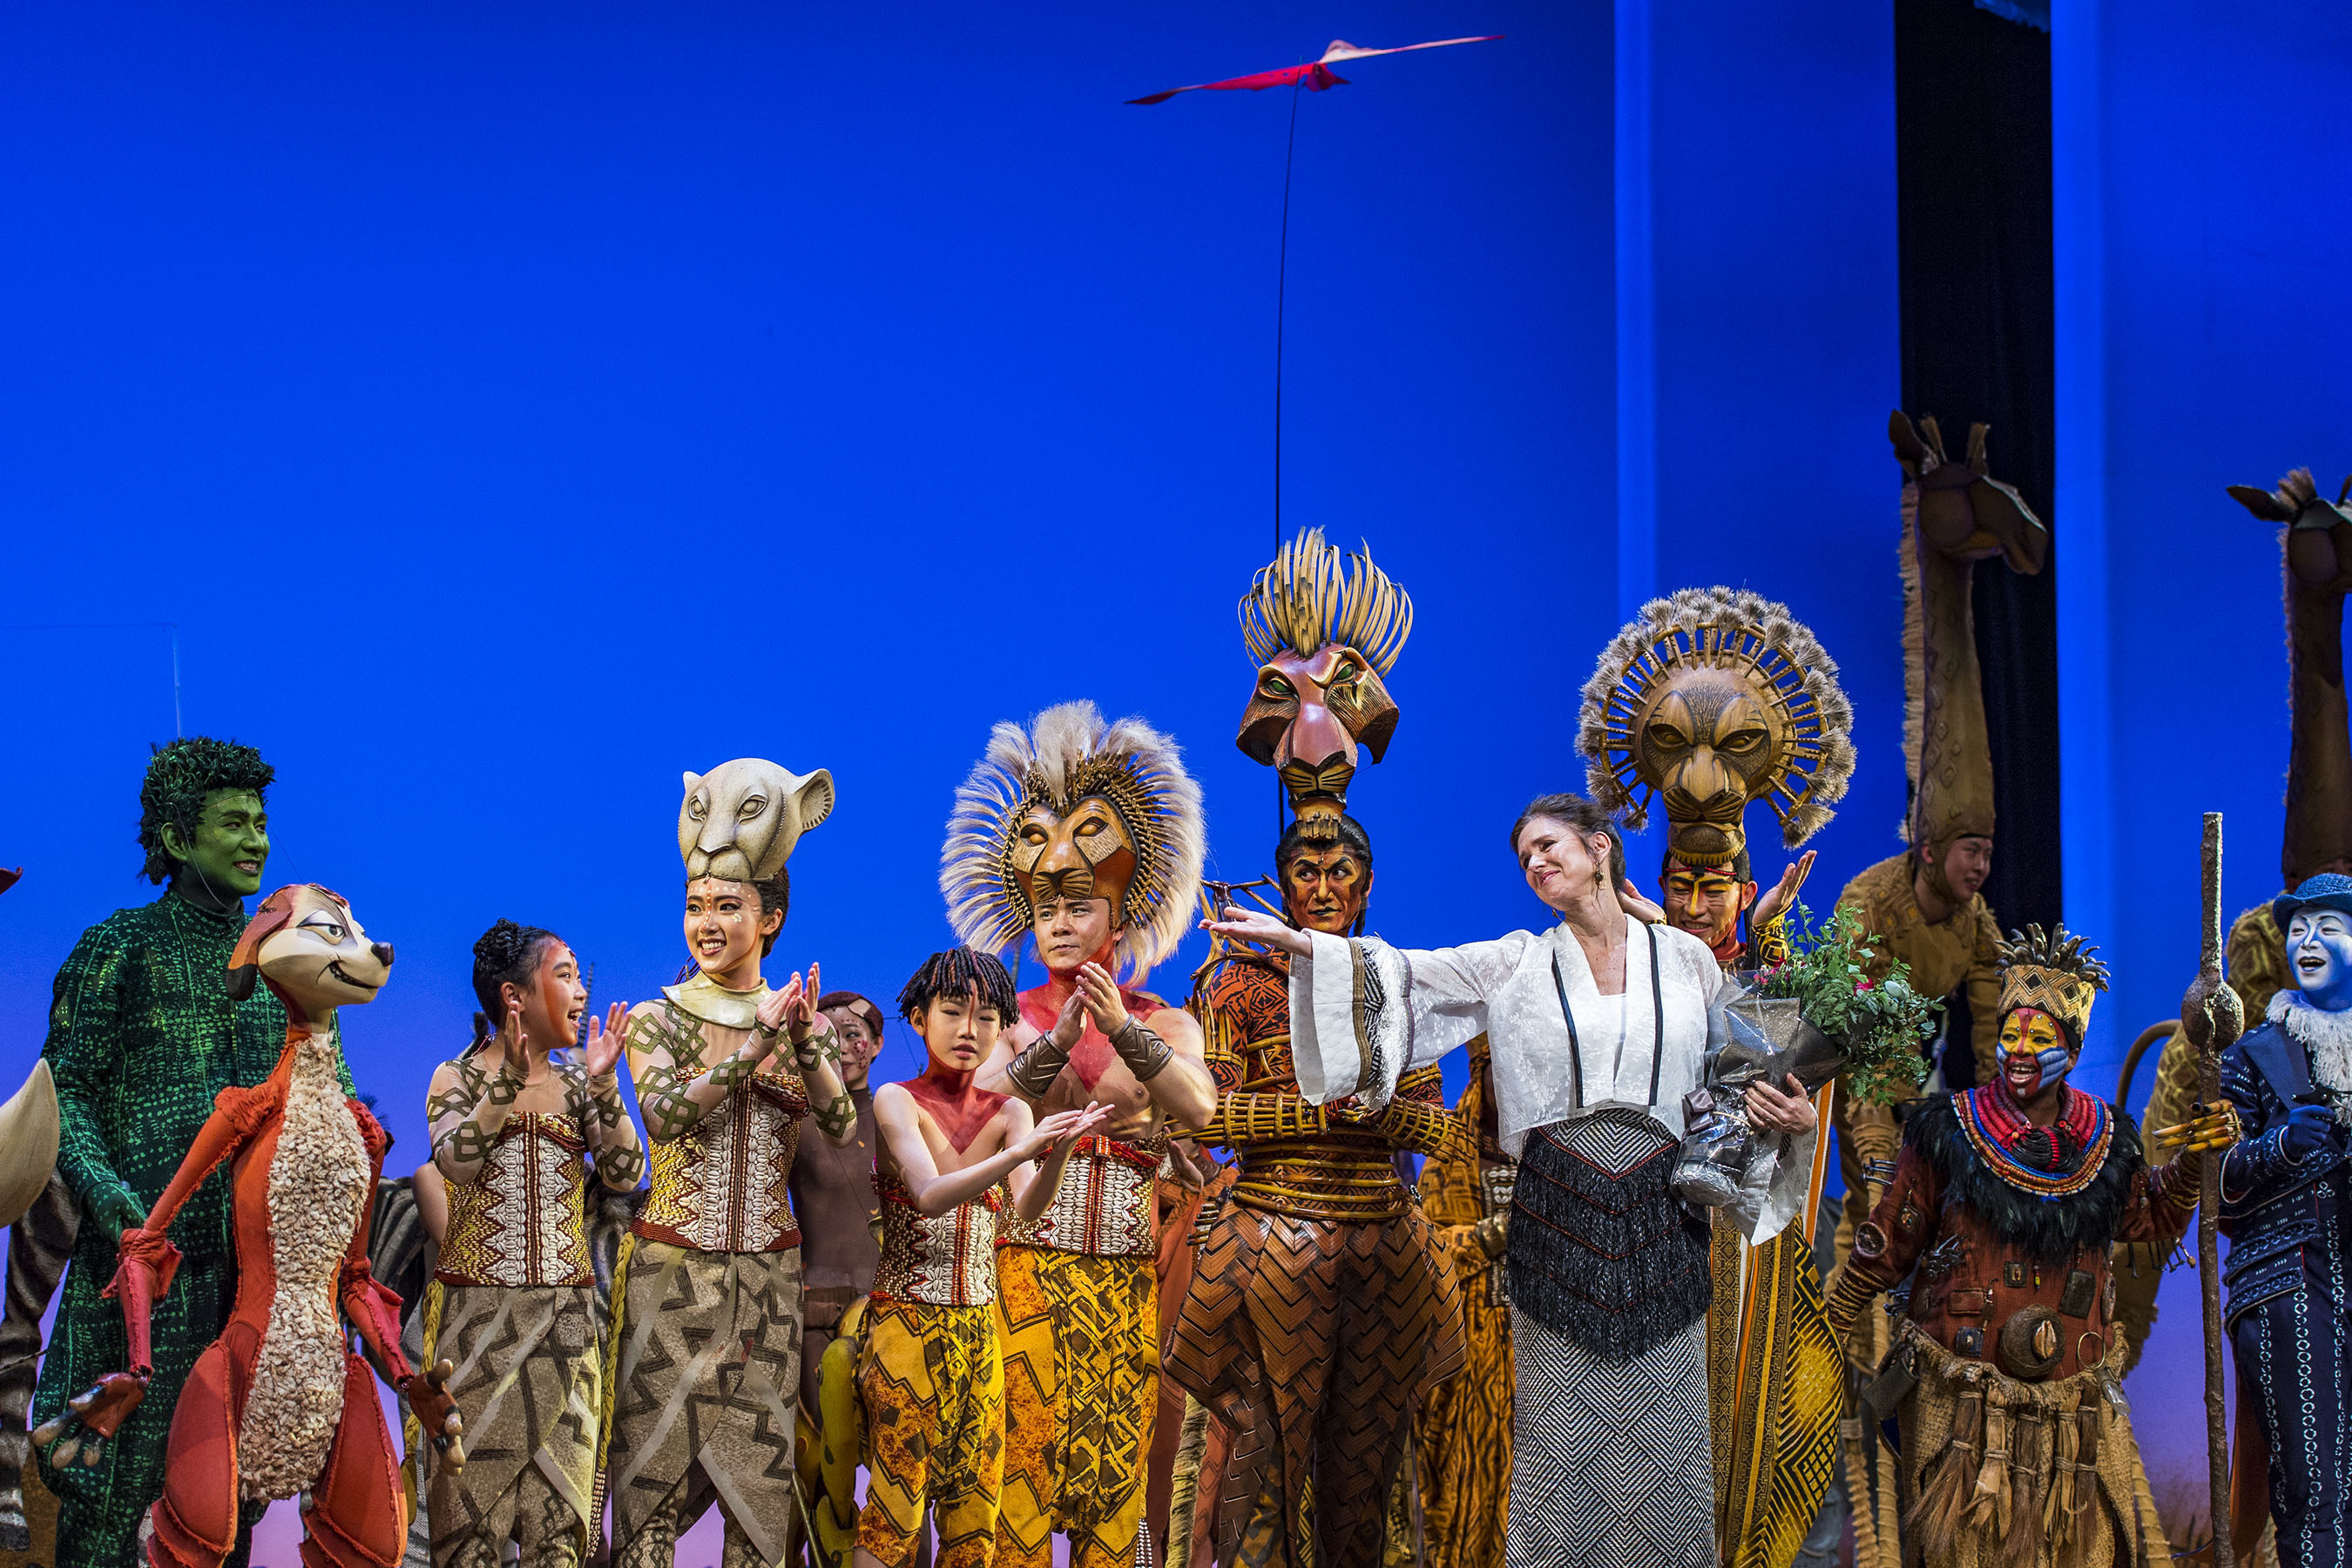 The cast of Disney's THE LION KING honors Broadway director Julie Taymor during the Global Premiere of the first-ever production in Mandarin at the Grand Opening of Shanghai Disney Resort. Taymor, the director, costume designer and co-mask designer of the original Broadway production, was on hand to celebrate the opening of this historic show, staged exclusively at the Walt Disney Grand Theatre in Disneytown at the Resort. In its 19th year, THE LION KING remains ascendant as one of the most popular stage musicals in the world. Since its Broadway premiere on November 13, 1997, 22 global productions have been seen by more than 85 million people and, cumulatively, run a staggering 132 years.